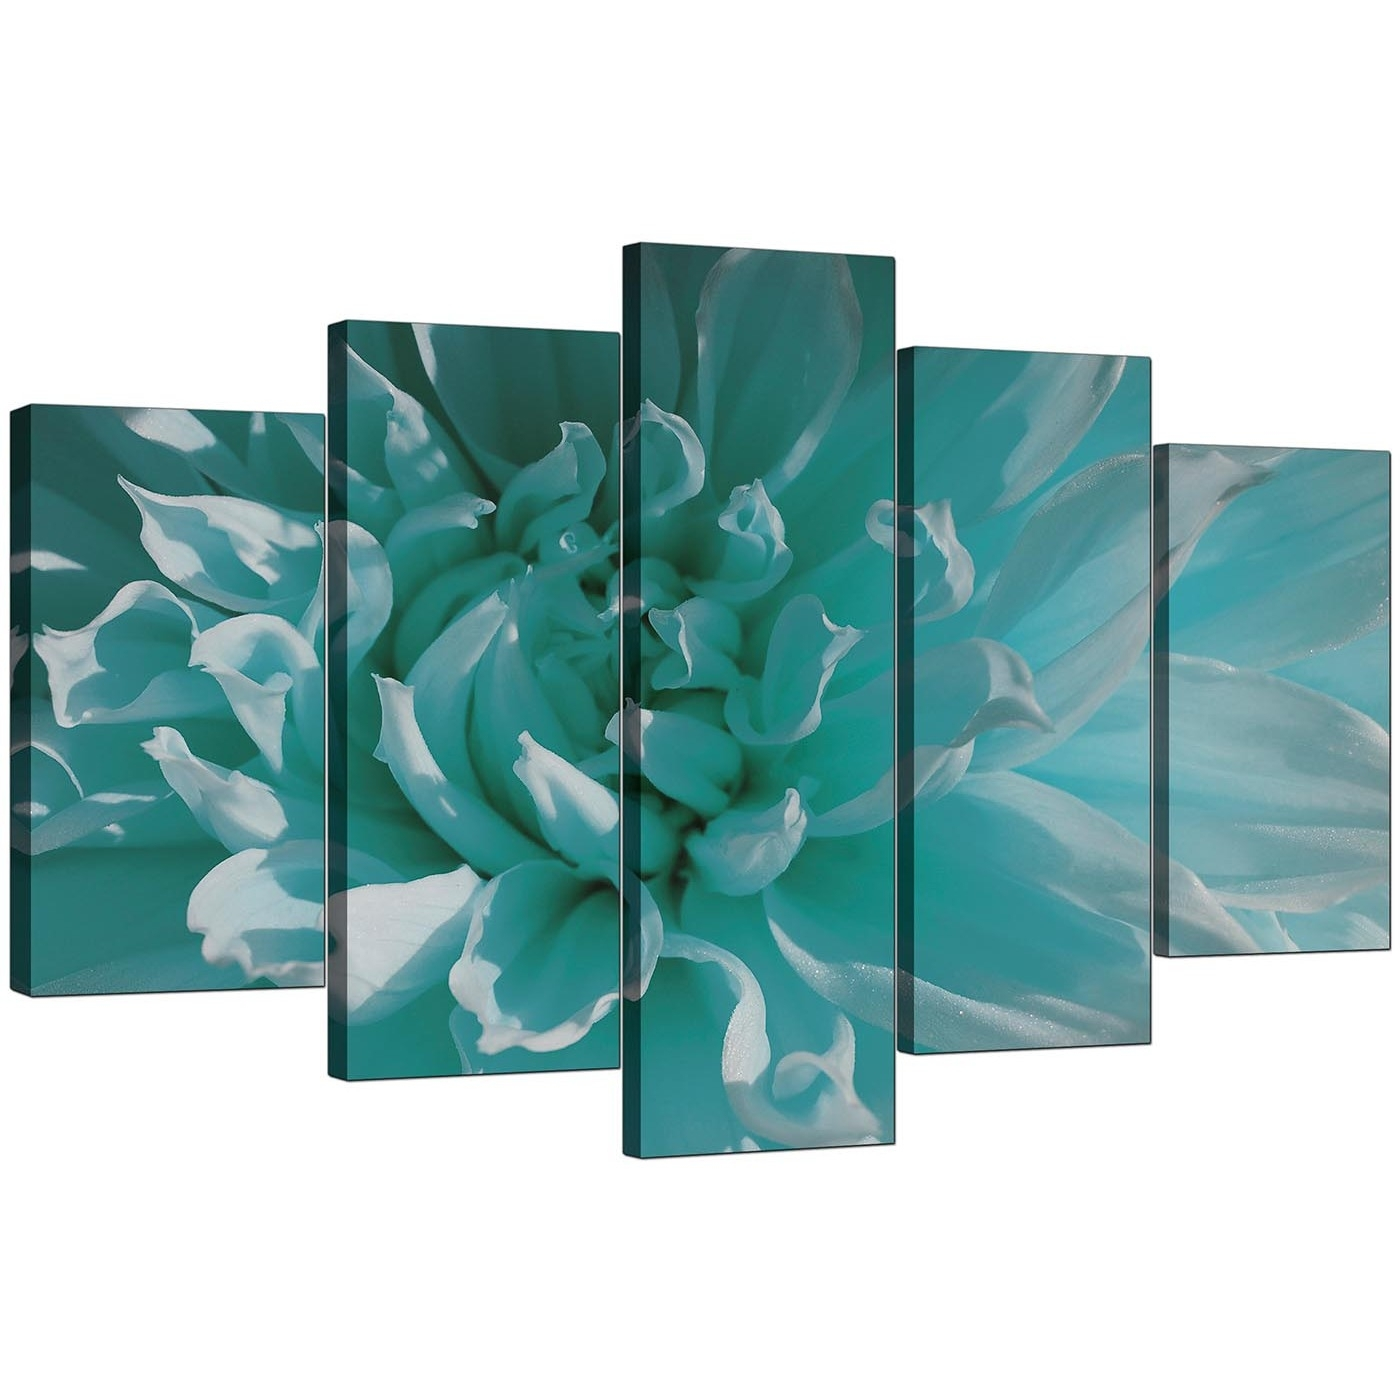 Extra Large Flower Canvas Wall Art 5 Piece In Teal In Teal Wall Art (Photo 17 of 20)